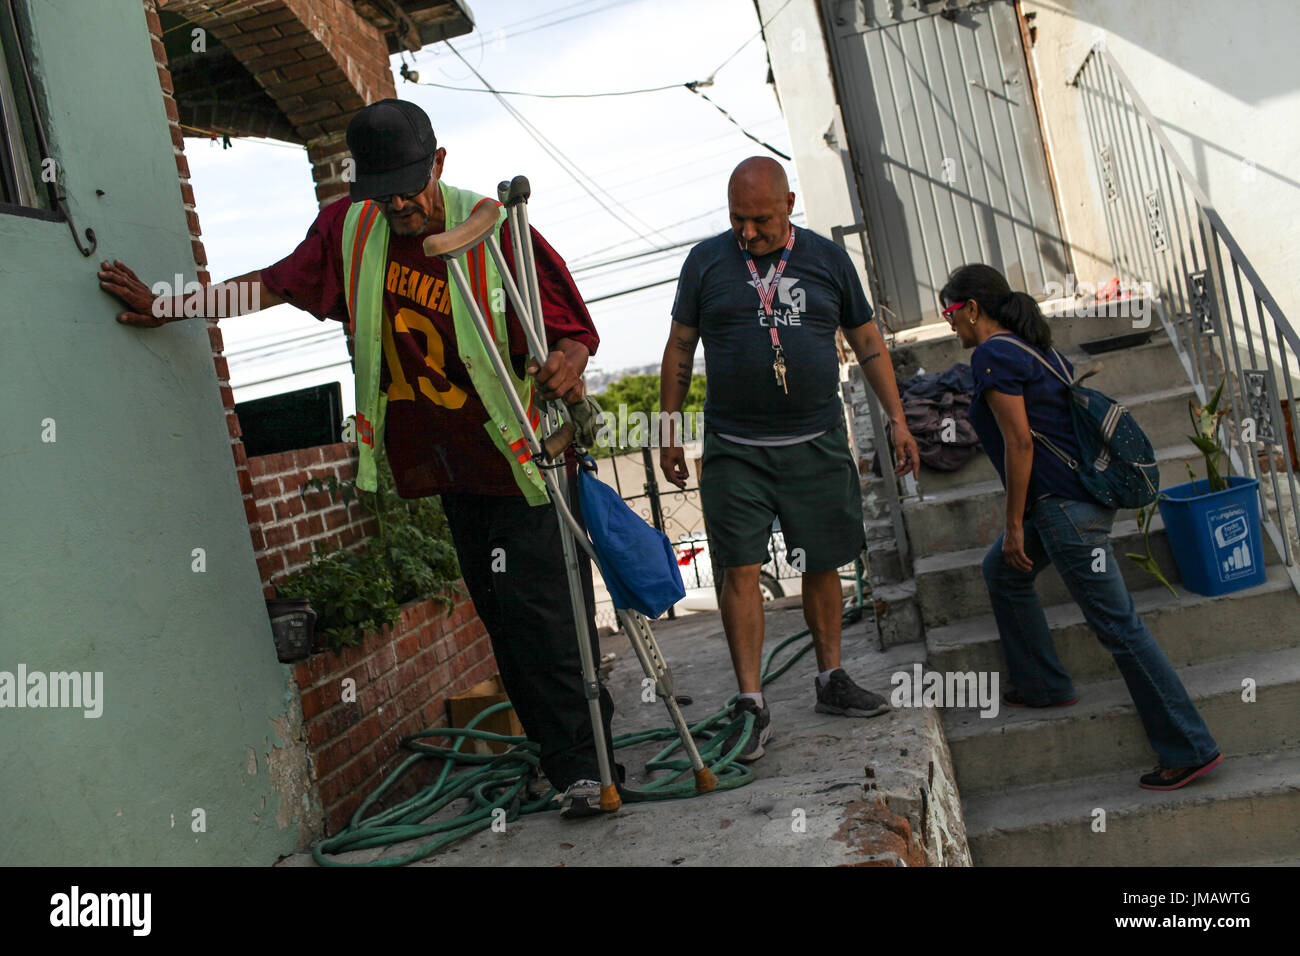 Tijuana, Baja California, Mexico. 7th July, 2017. Deported U.S. Army veteran ARMANDO CERVANTES (L) guides deported U.S. Army veteran HECTOR BARAJAS-VARELA (C) and deported mother YOLANDA VARONA (R) to his shack in Tijuana, Baja California, Mexico. Barajas-Varela is working with Cervantes to construct him a new home. Credit: Joel Angel Juarez/ZUMA Wire/Alamy Live News - Stock Image